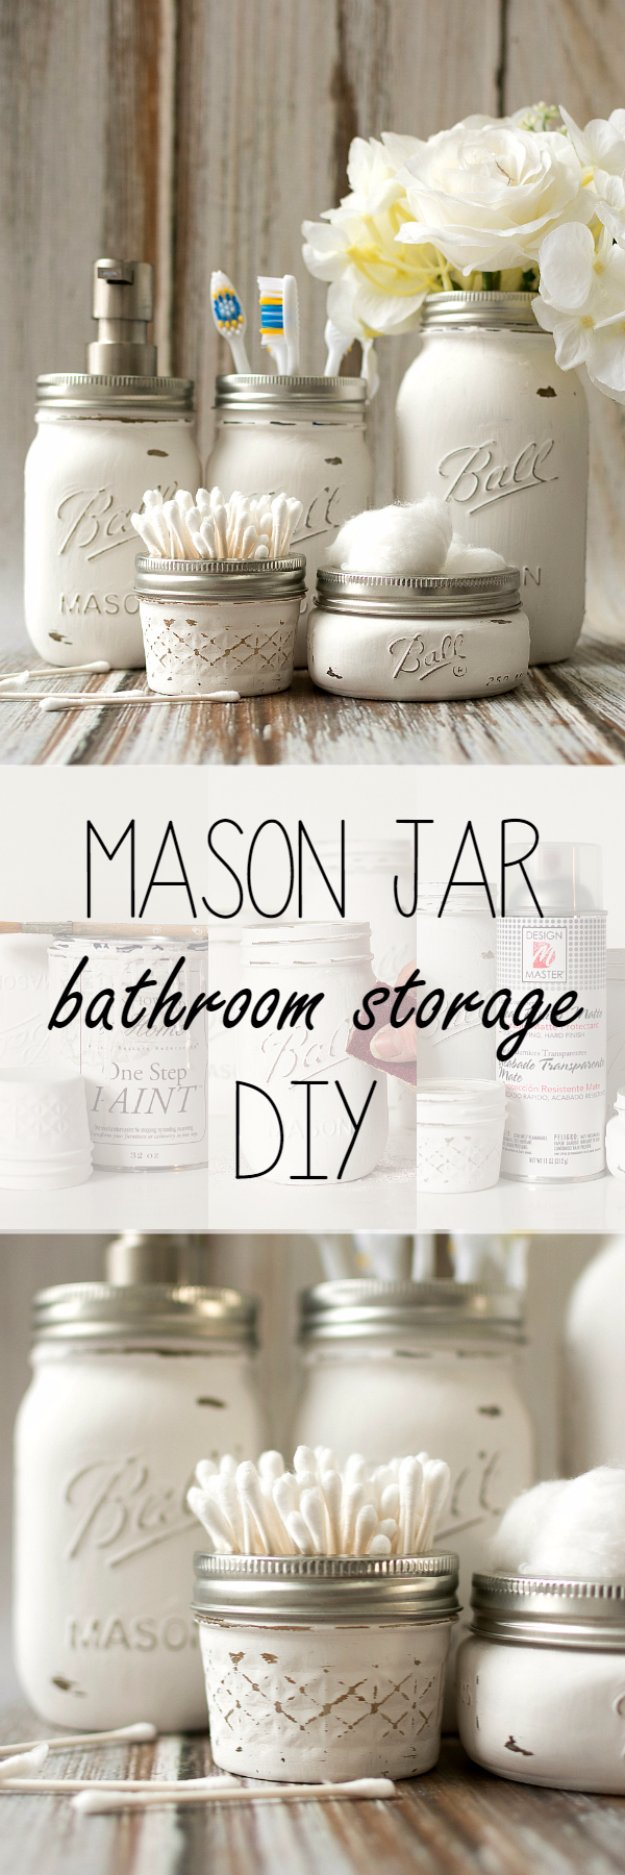 31 brilliant diy decor ideas for your bathroom - Diy bathroom decor ideas ...